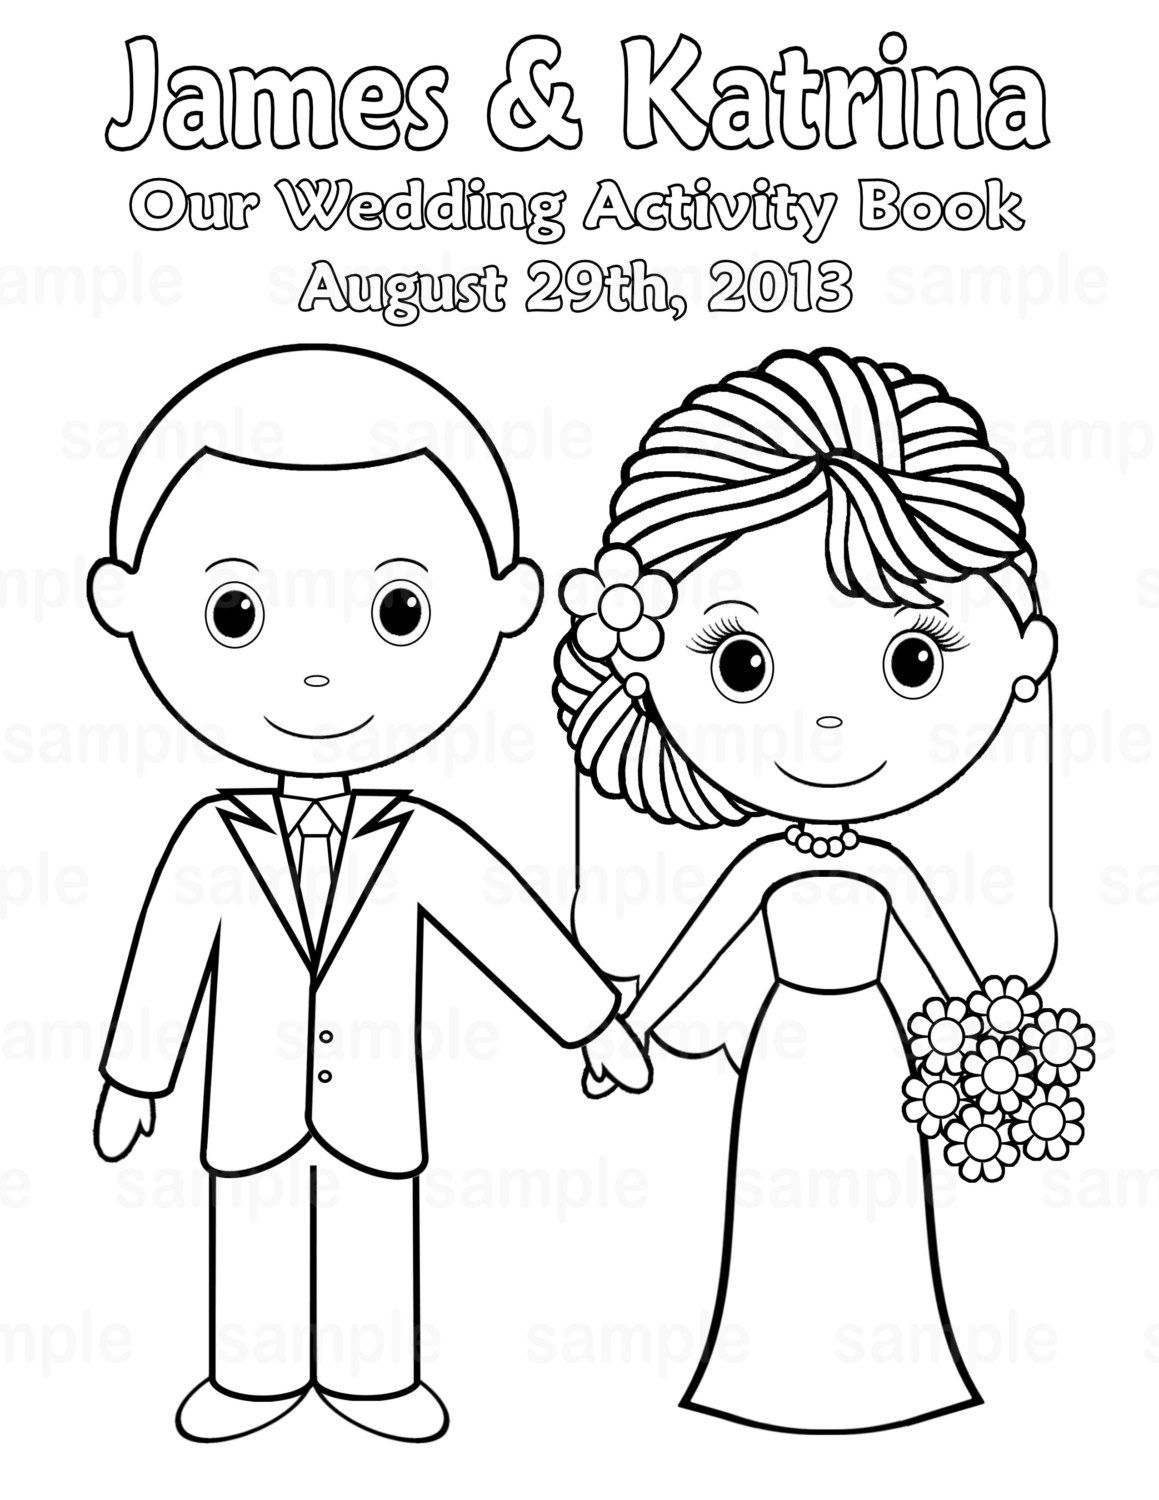 Colour In Bride And Groom Competition Wedding Coloring Pages